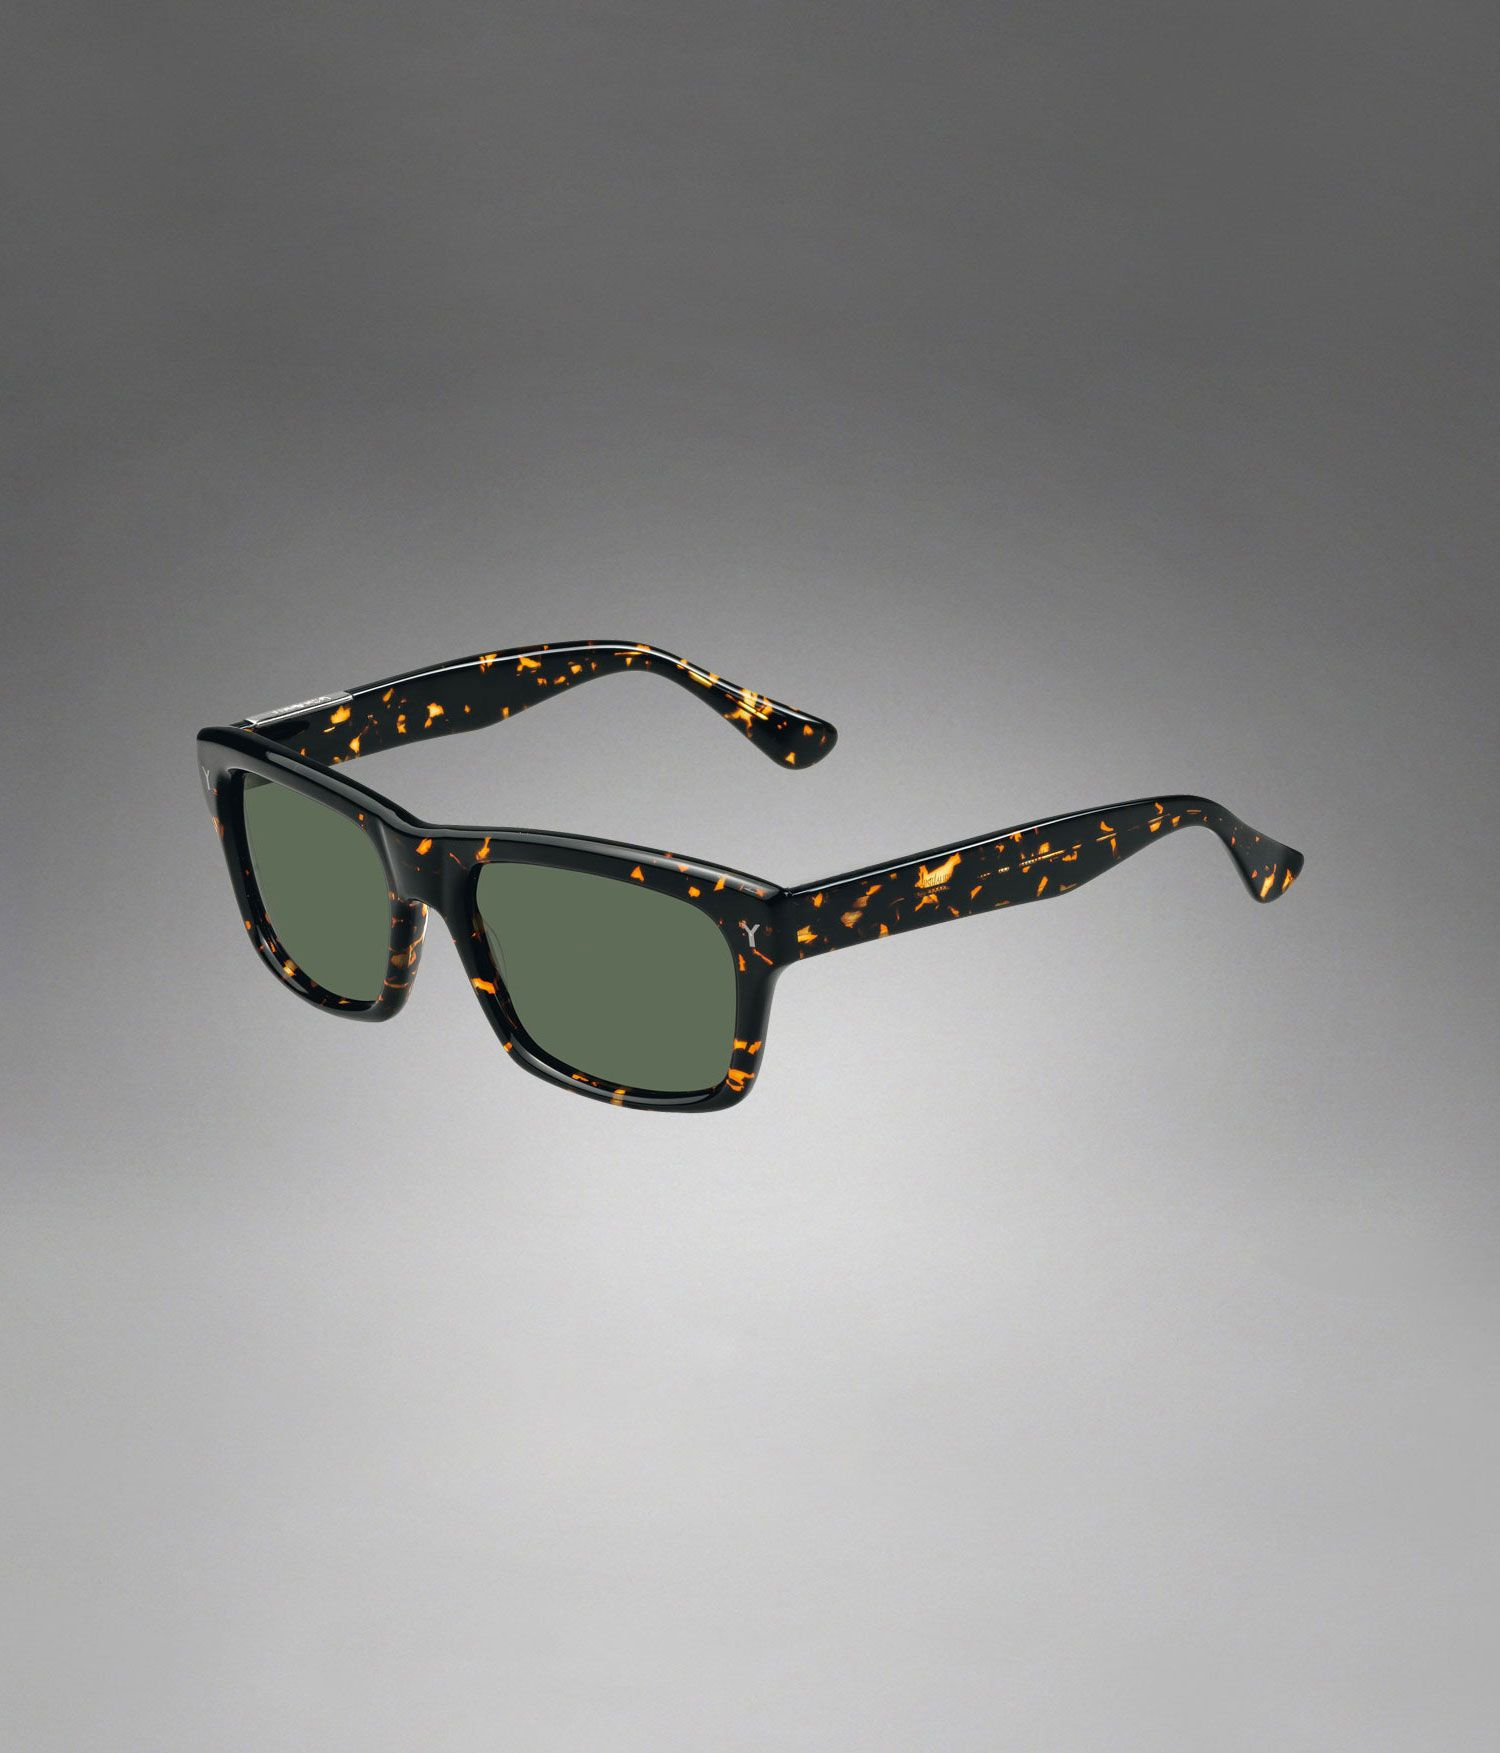 YSL Square Frame Sunglasses with Tortoise Shell Frame - Sunglasses – Men – Yves Saint Laurent